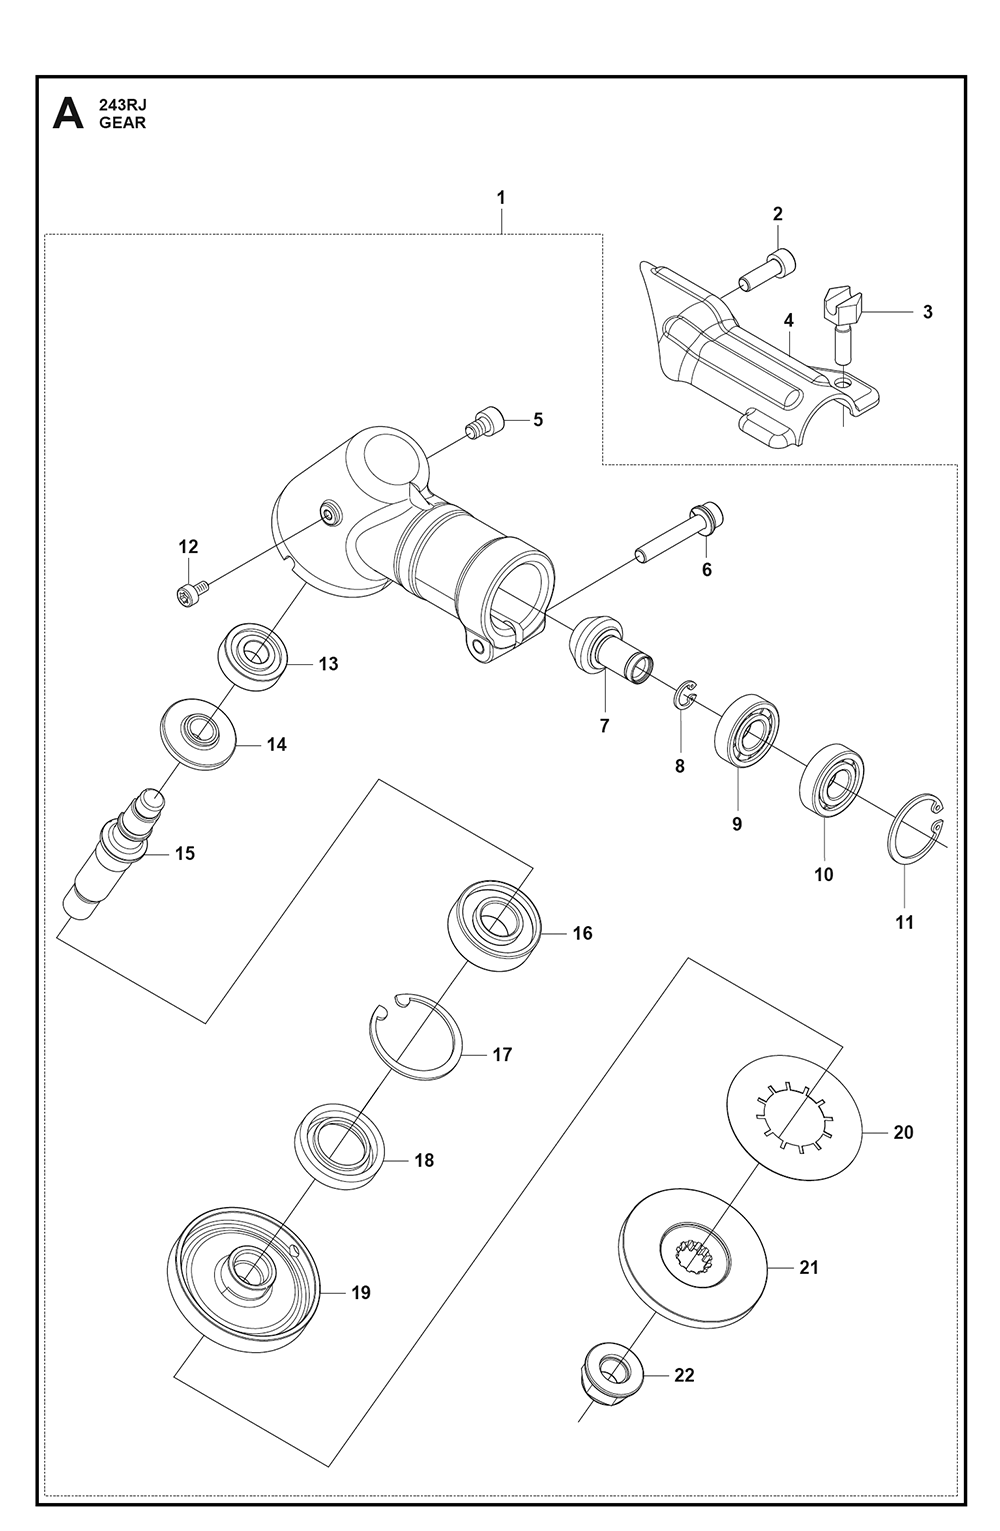 medium resolution of husqvarna 243 rj 25 parts schematic